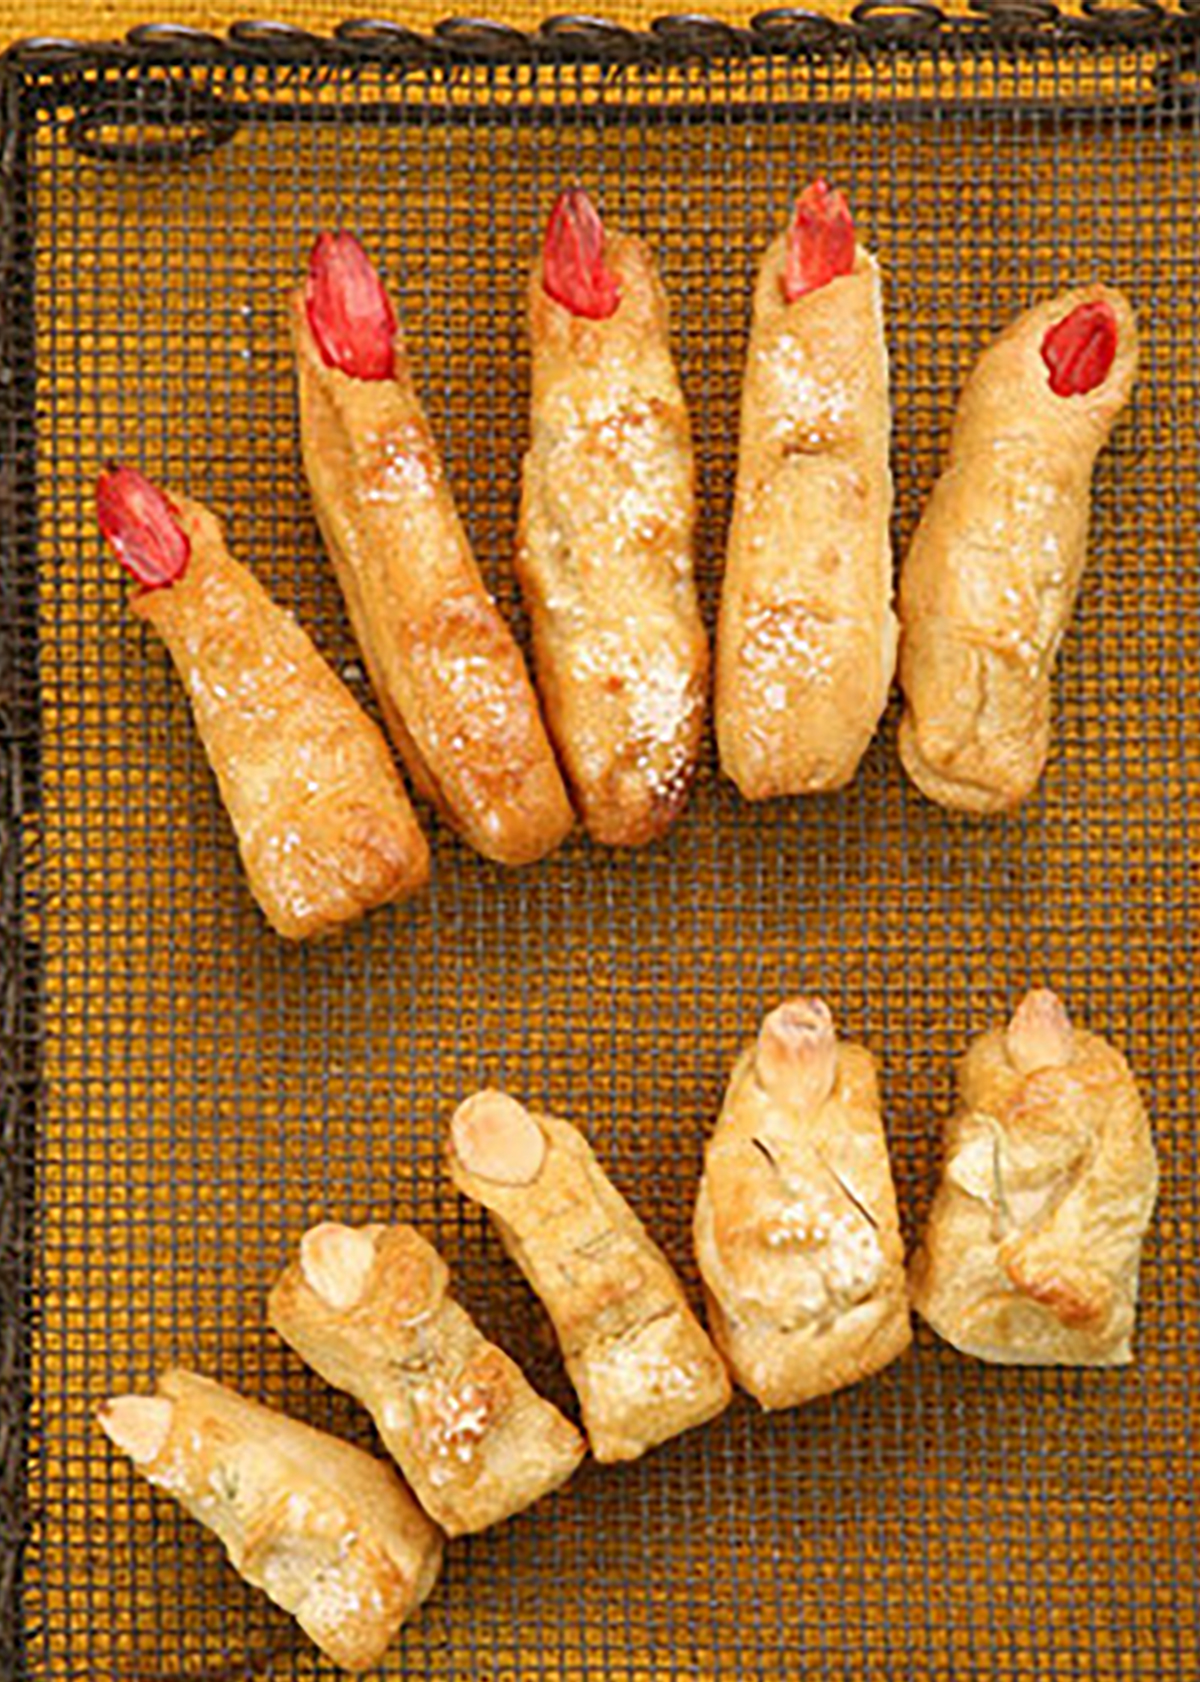 Ladies' Fingers and Men's Toes